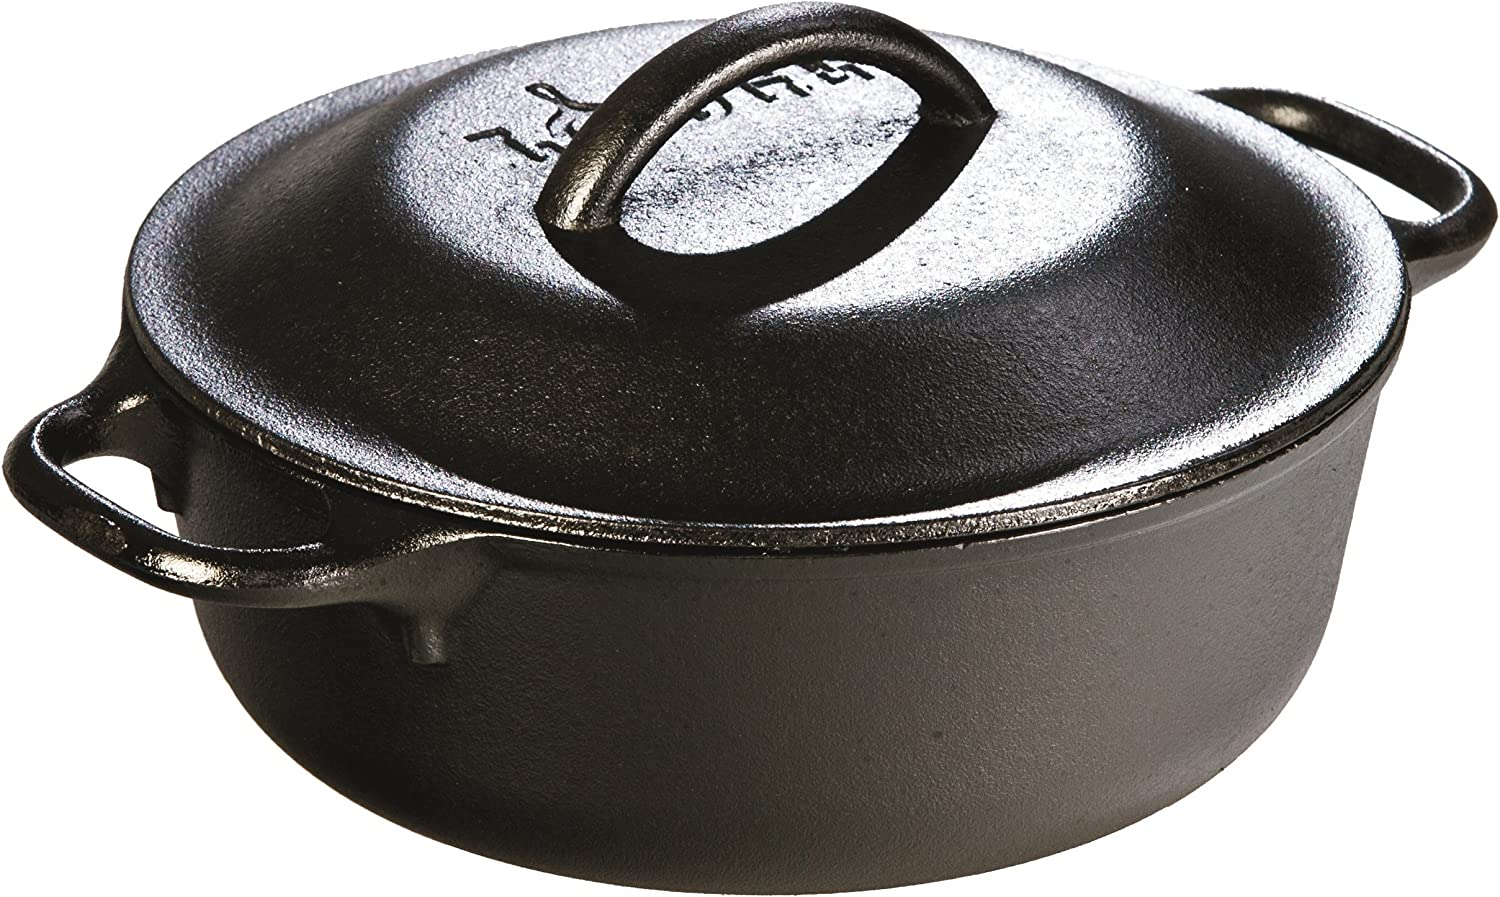 Lodge 2 Quart Cast Iron Dutch Oven. Pre-seasoned Pot with Lid for Cooking, Basting, or Baking (Renewed)